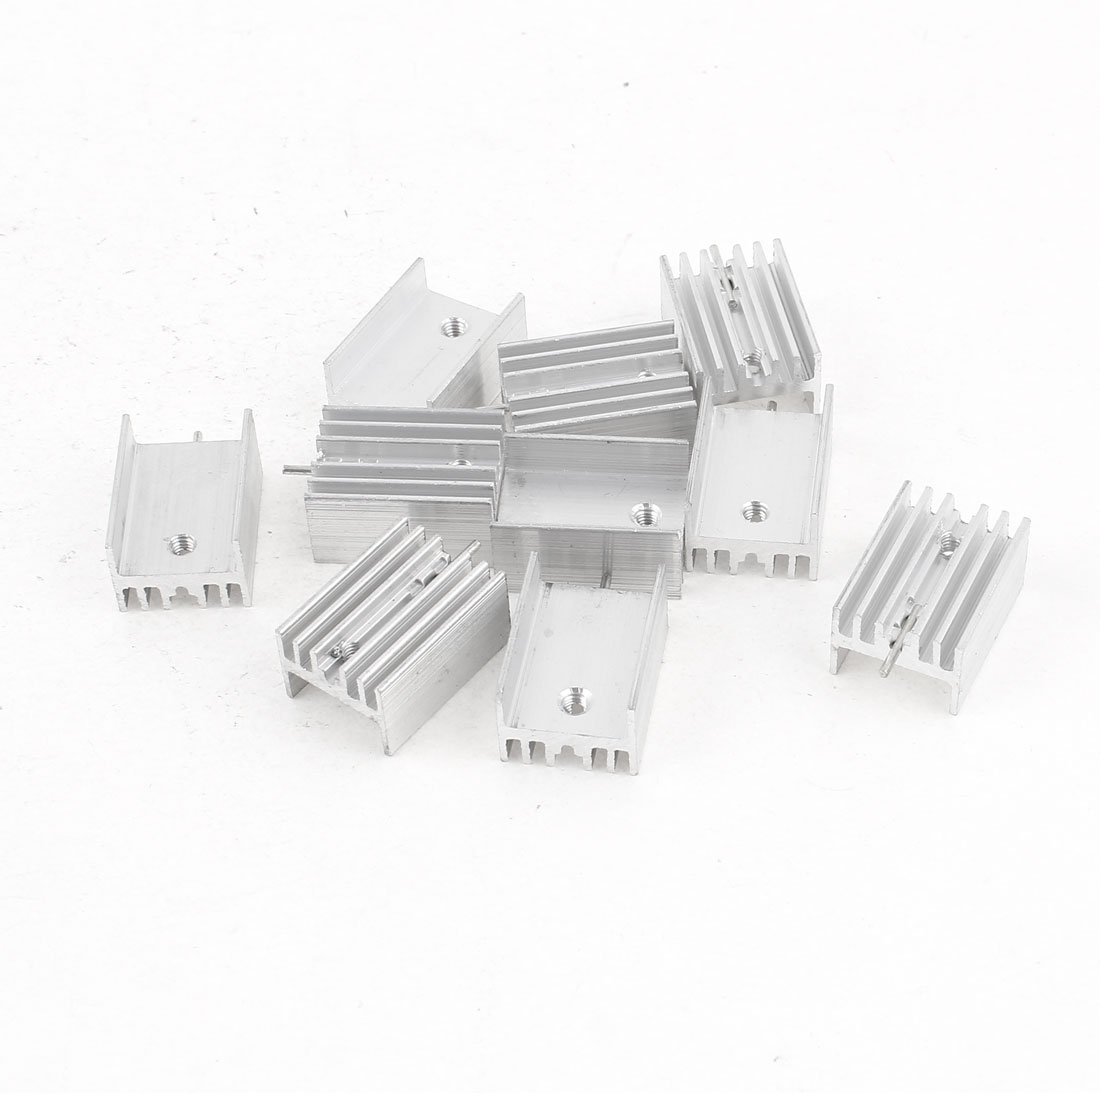 10 Pcs 21x15x10mm Aluminum Heat Sink for TO-220 Mosfet Transistors